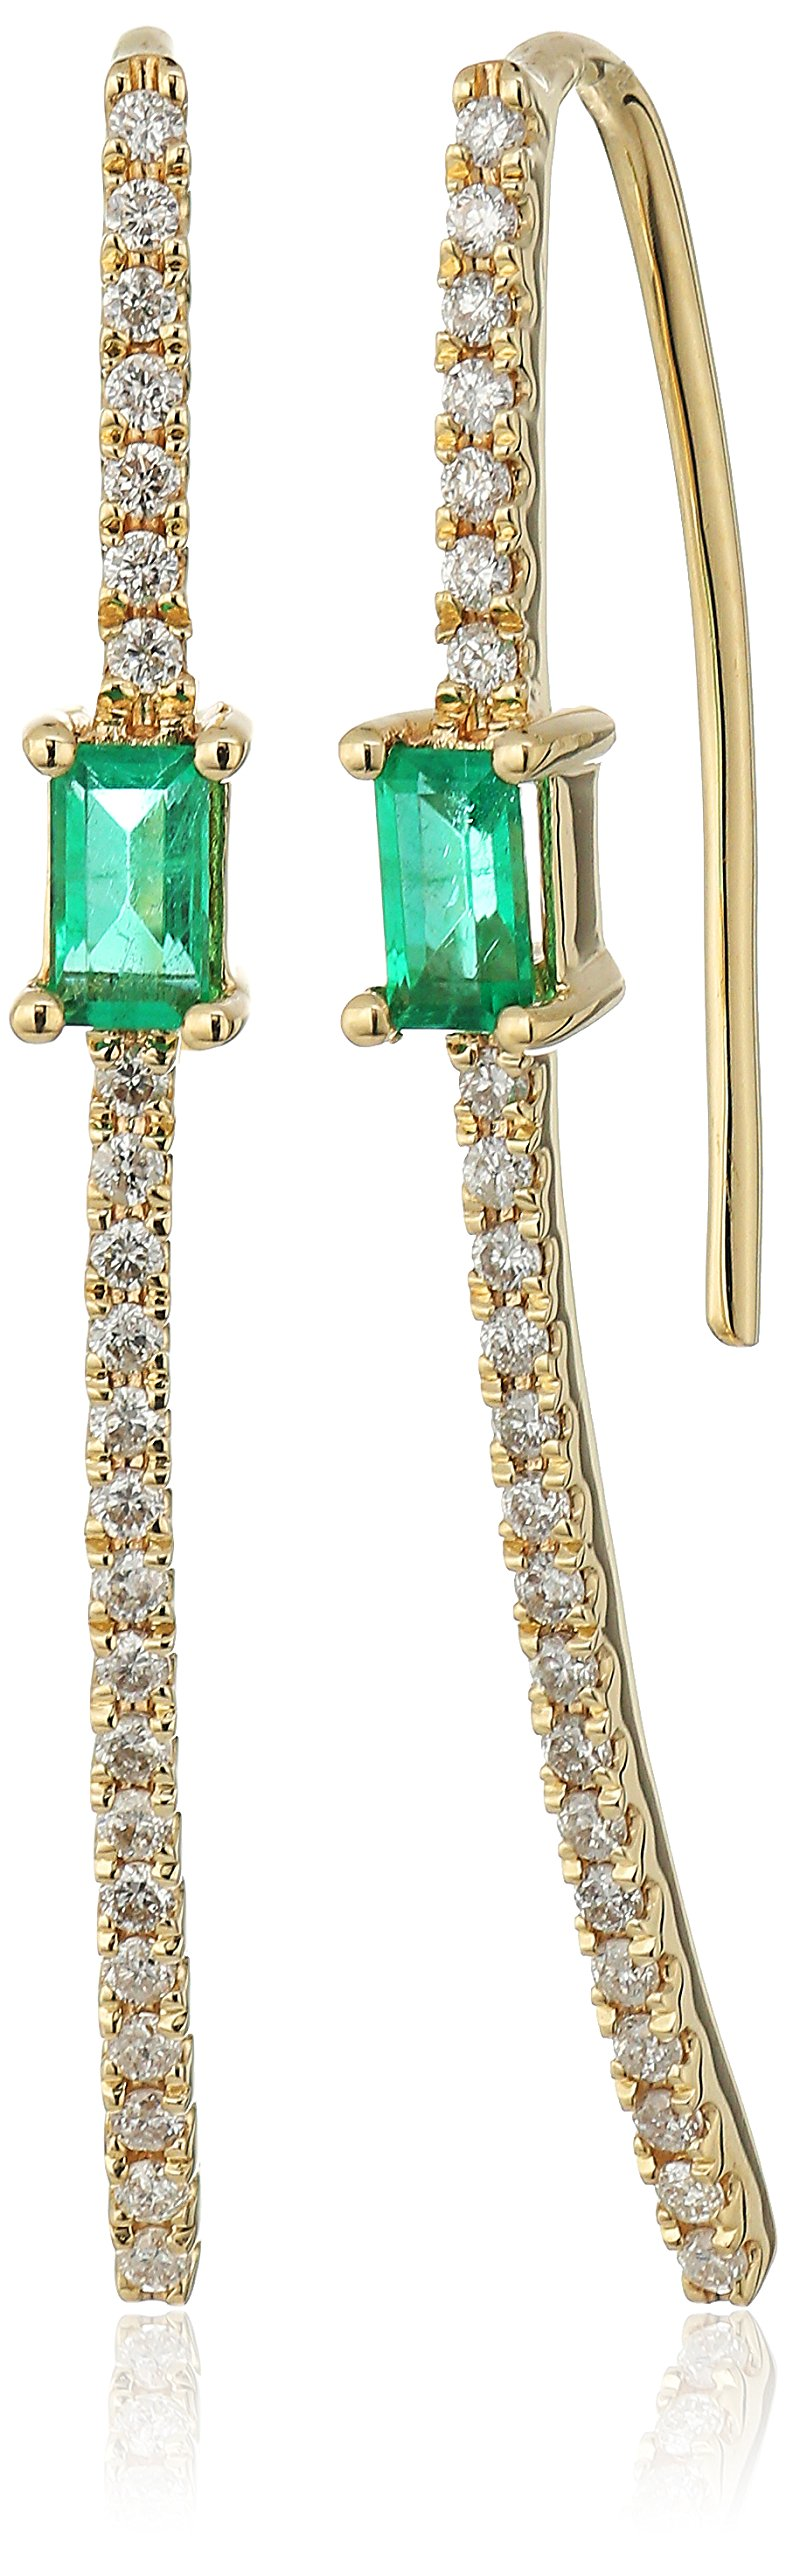 10k Yellow Gold Emerald Cut Emerald with Diamond Accent Drop Earrings (1/10cttw, I-J Color, I2-I3 Clarity)